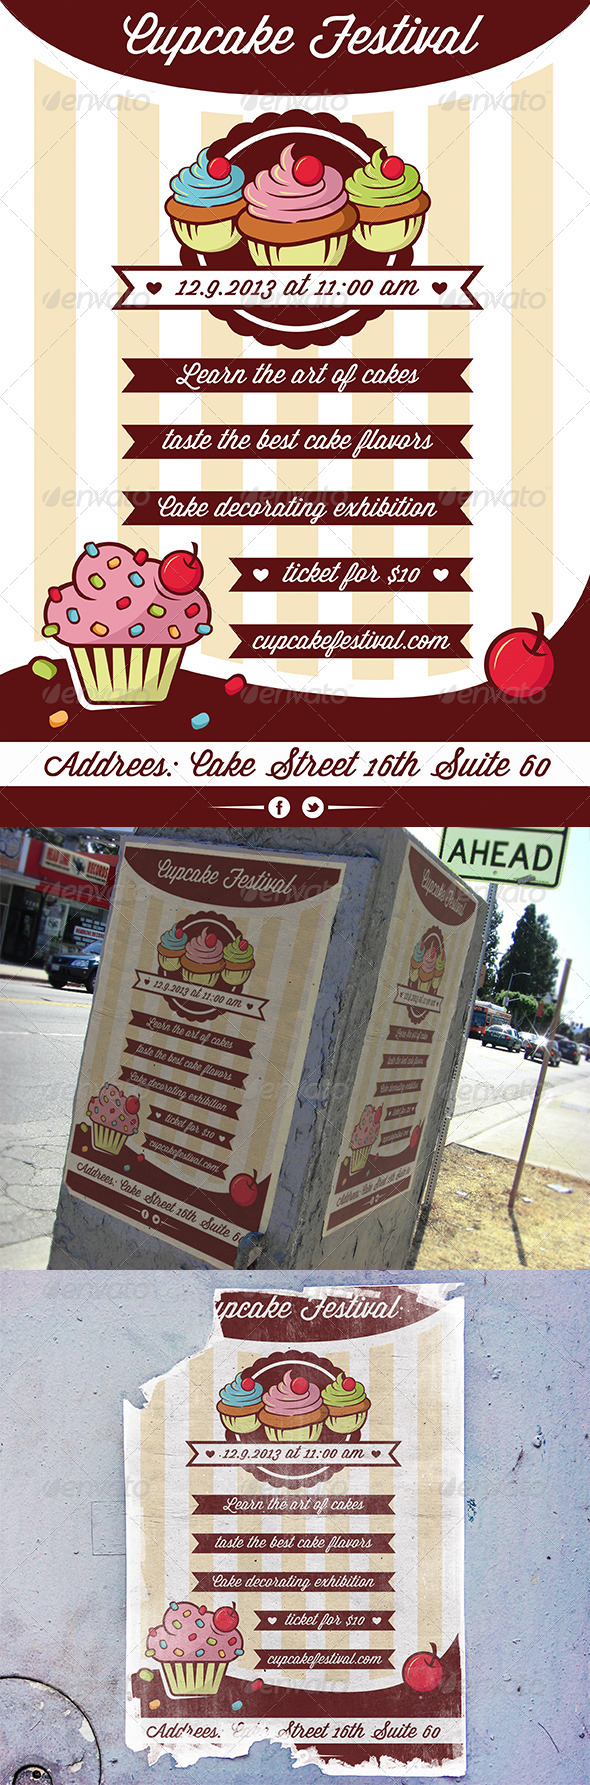 GraphicRiver Cupcake Bakery Flyer 5546404